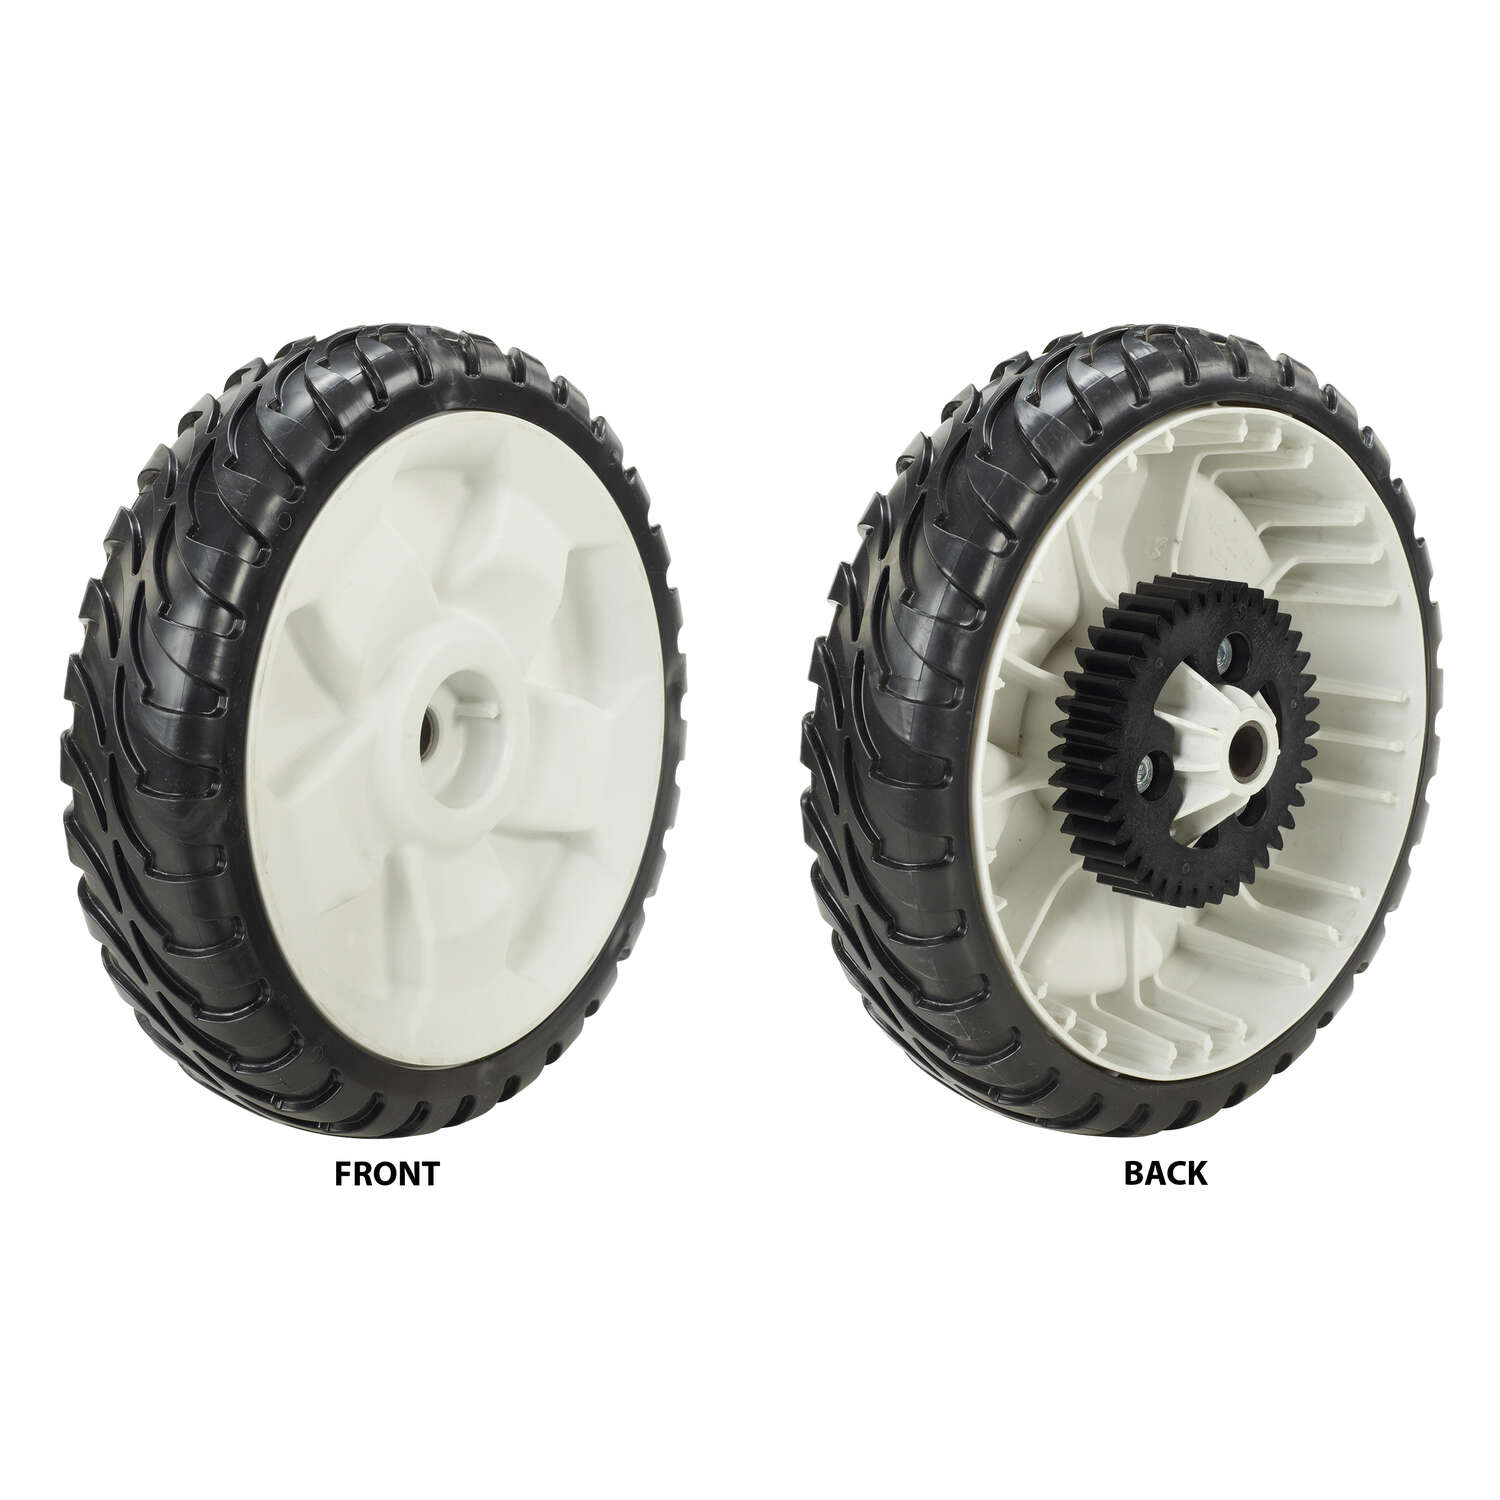 Toro  2 in. W x 8 in. Dia. Plastic  Lawn Mower Replacement Wheel